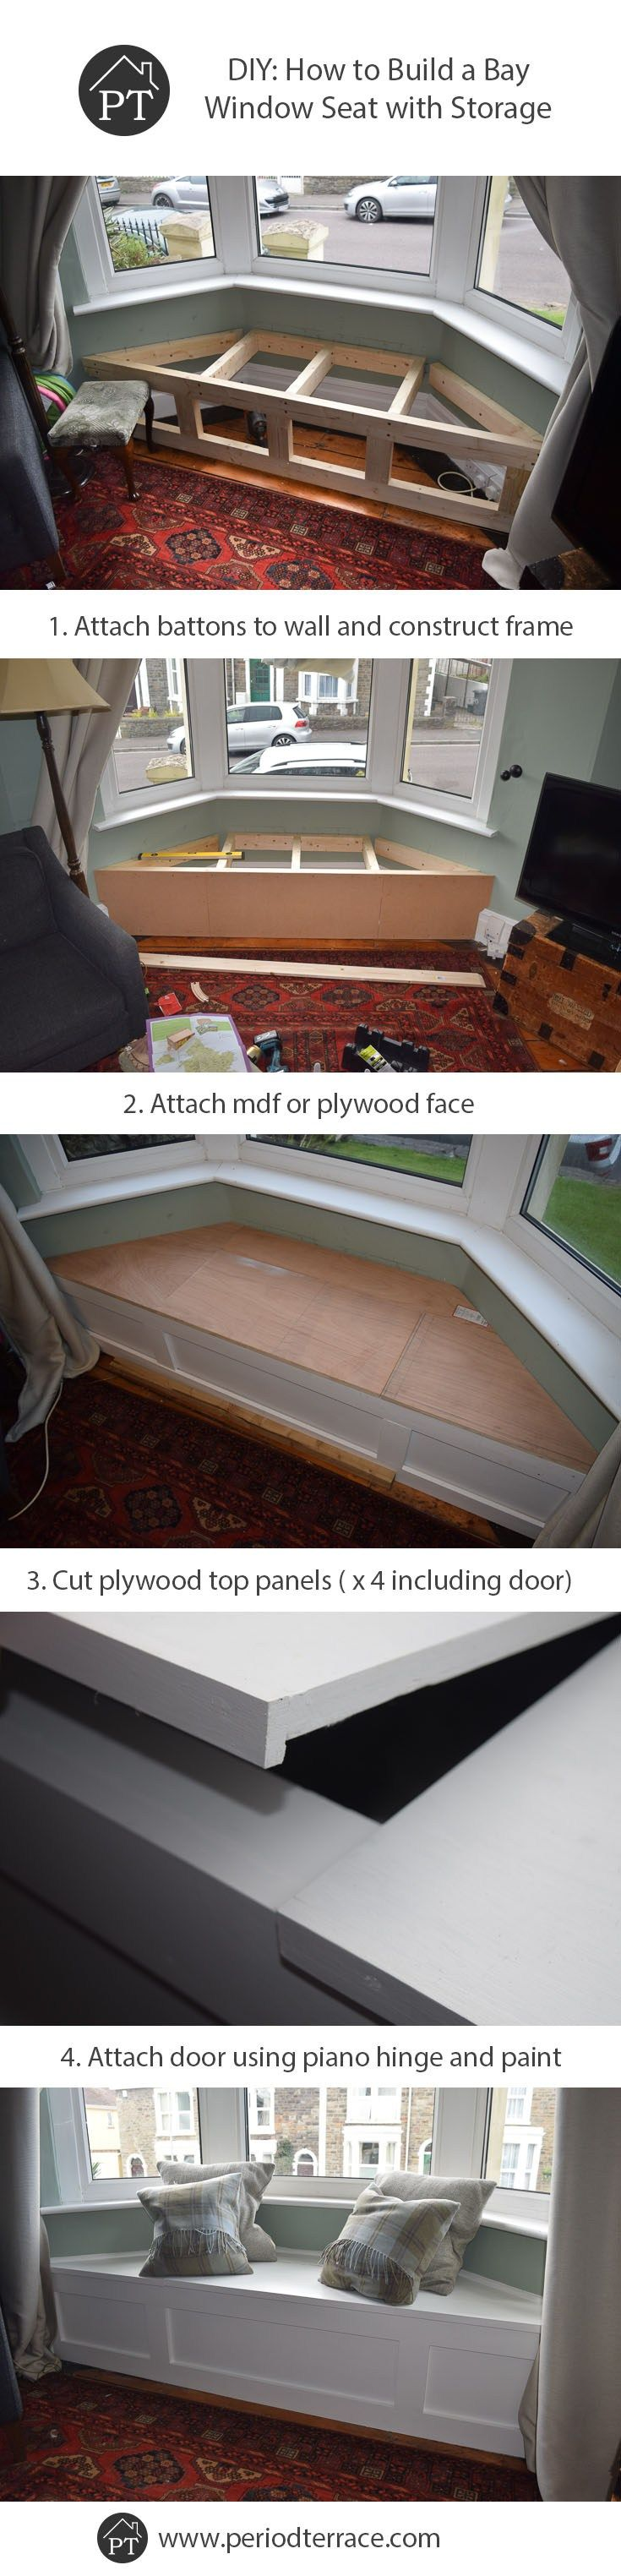 Window seat storage camps pinterest - How To Build A Victorian Bay Window Seat With Storage